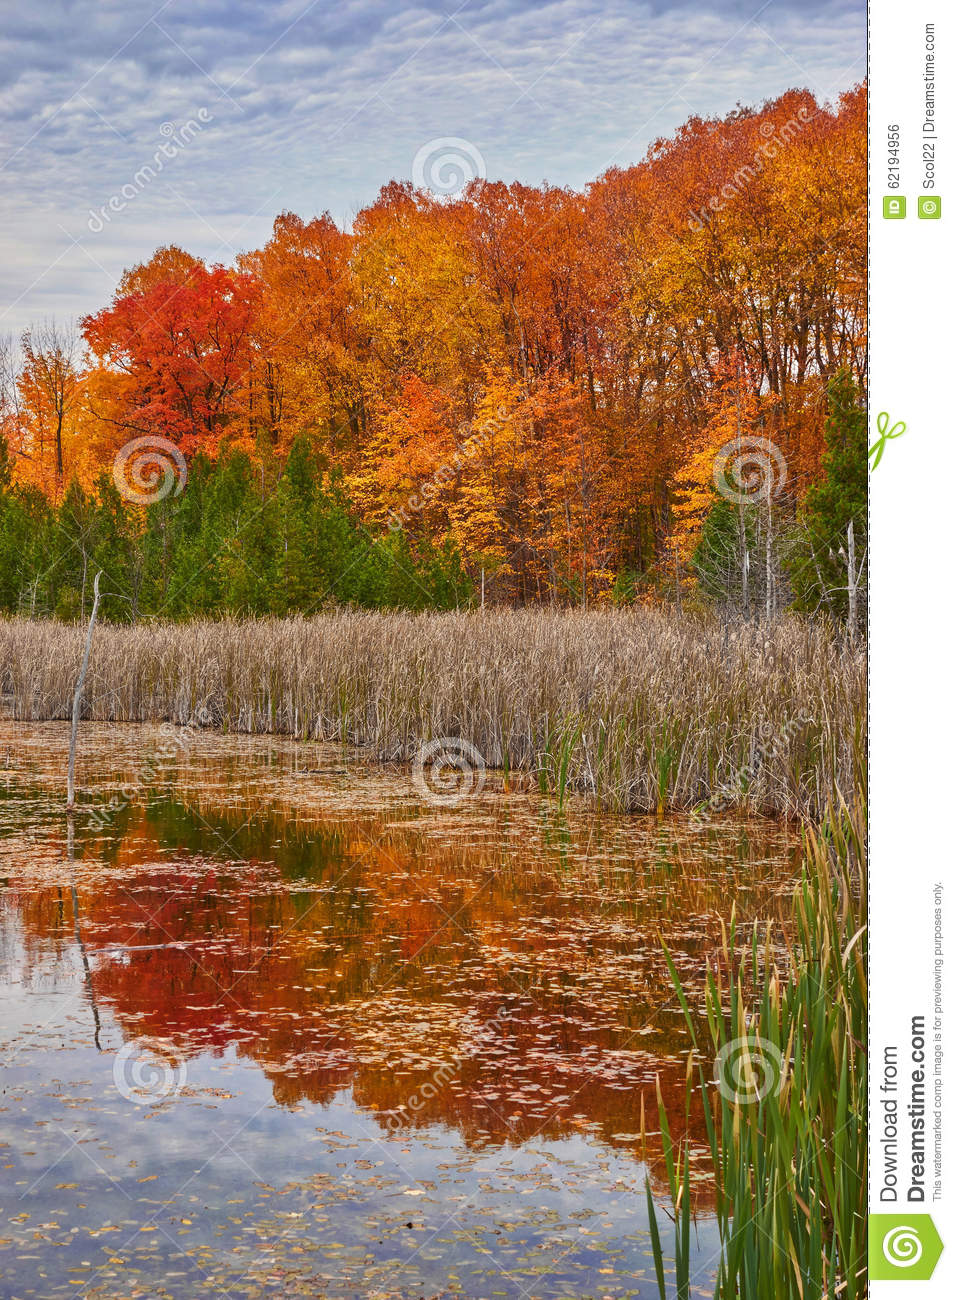 Wetland Forest In Fall Stock Photo - Image: 62194956